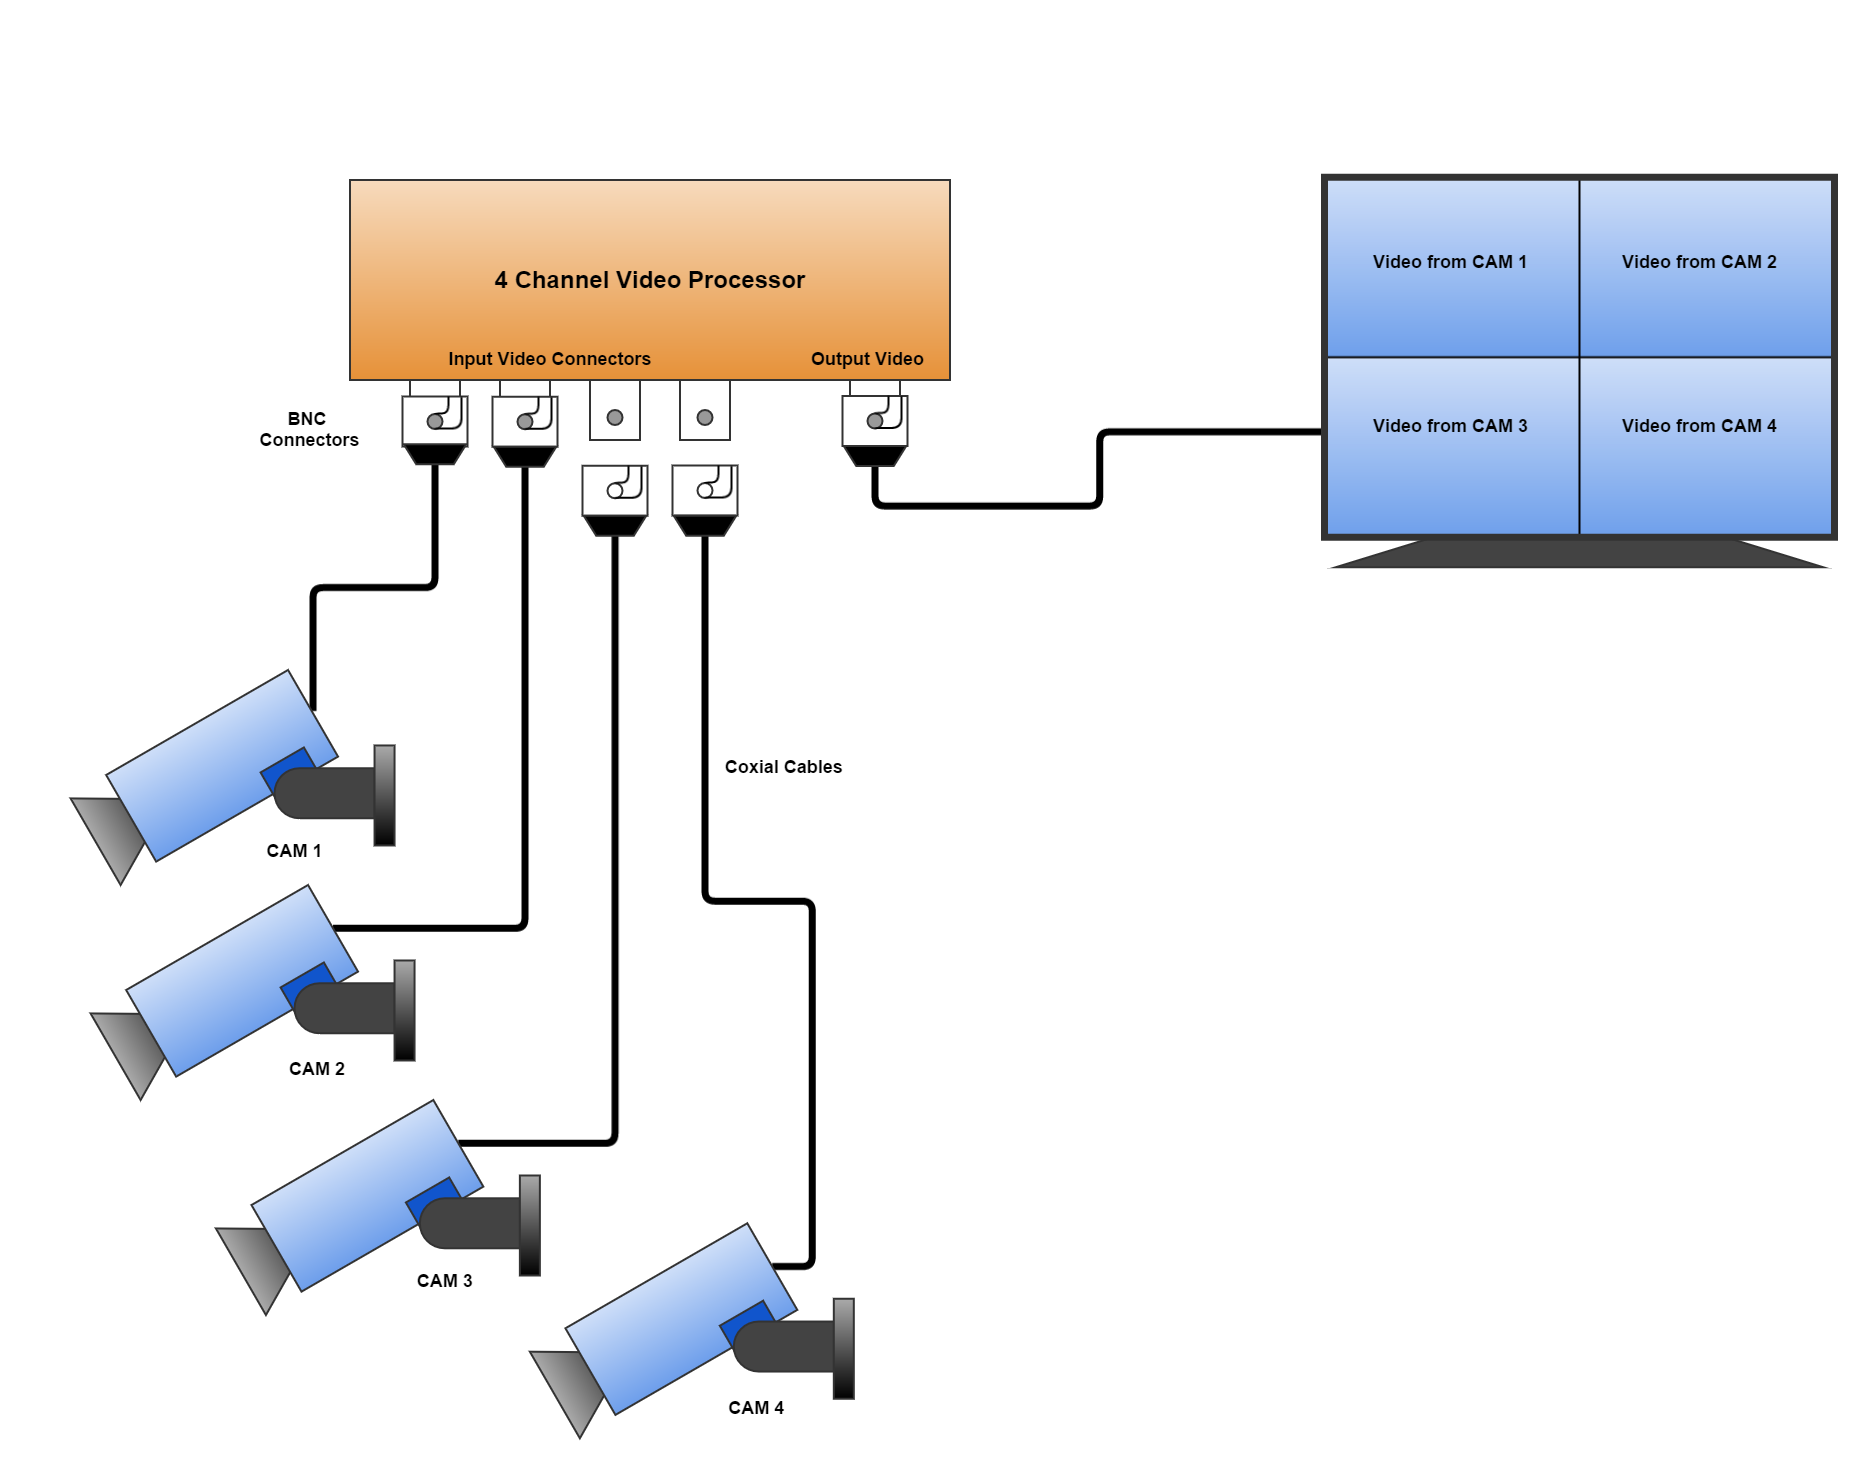 4 channel Video Processor connection diagram